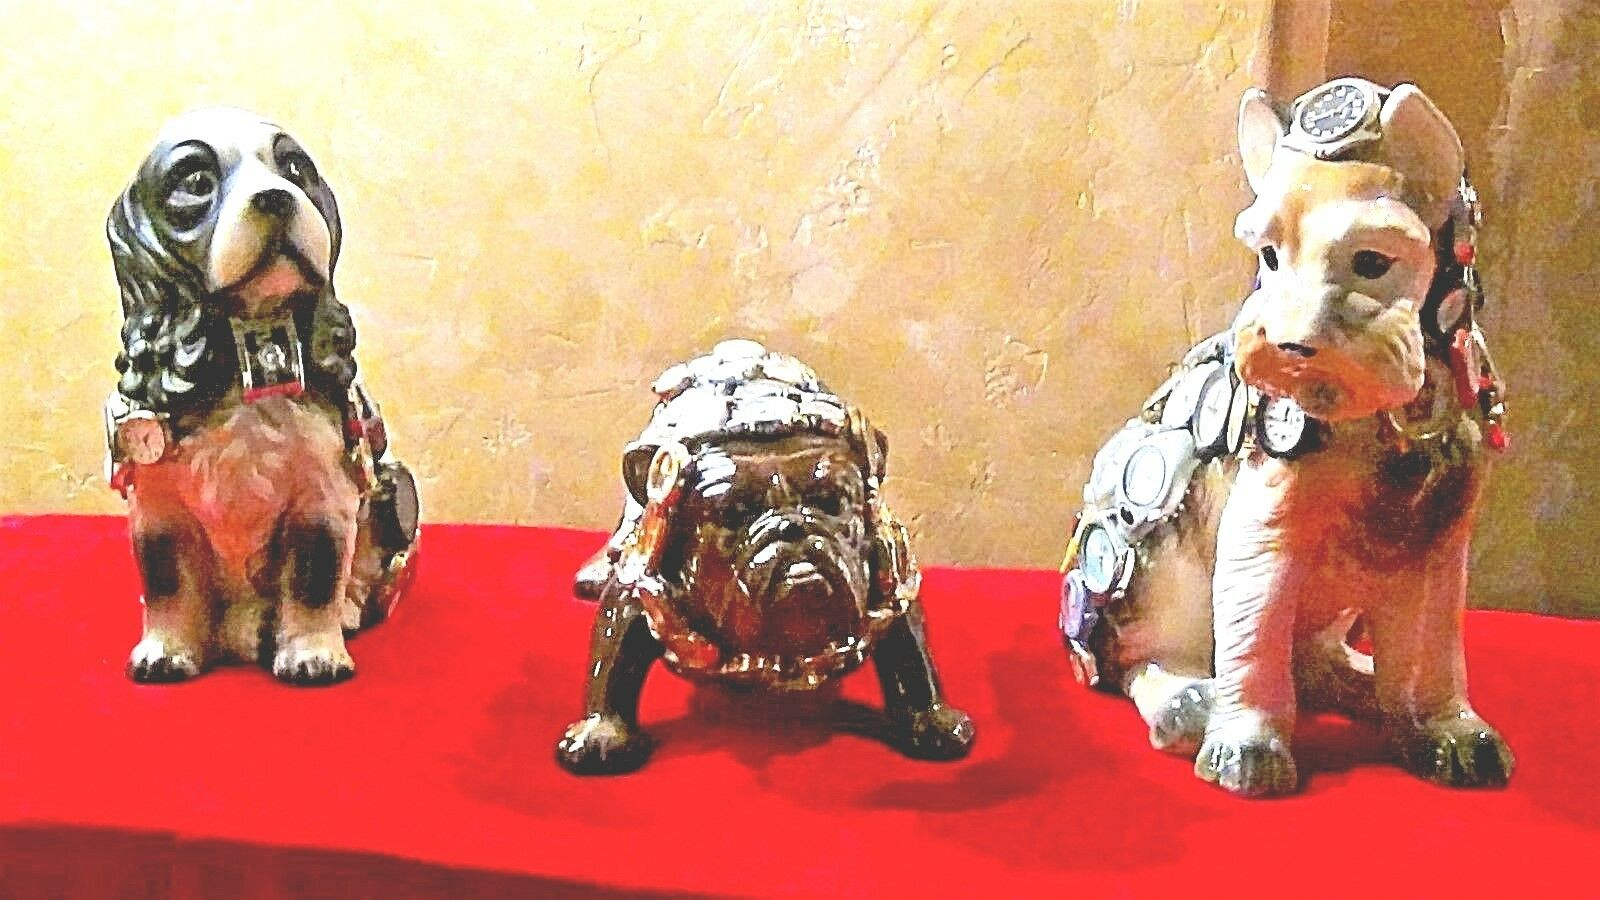 SET OF 3 UNIQUE PORCELAIN DOG FIGURES W/OVER 140 ORIGINAL WATCHES ATTACHED TO IT